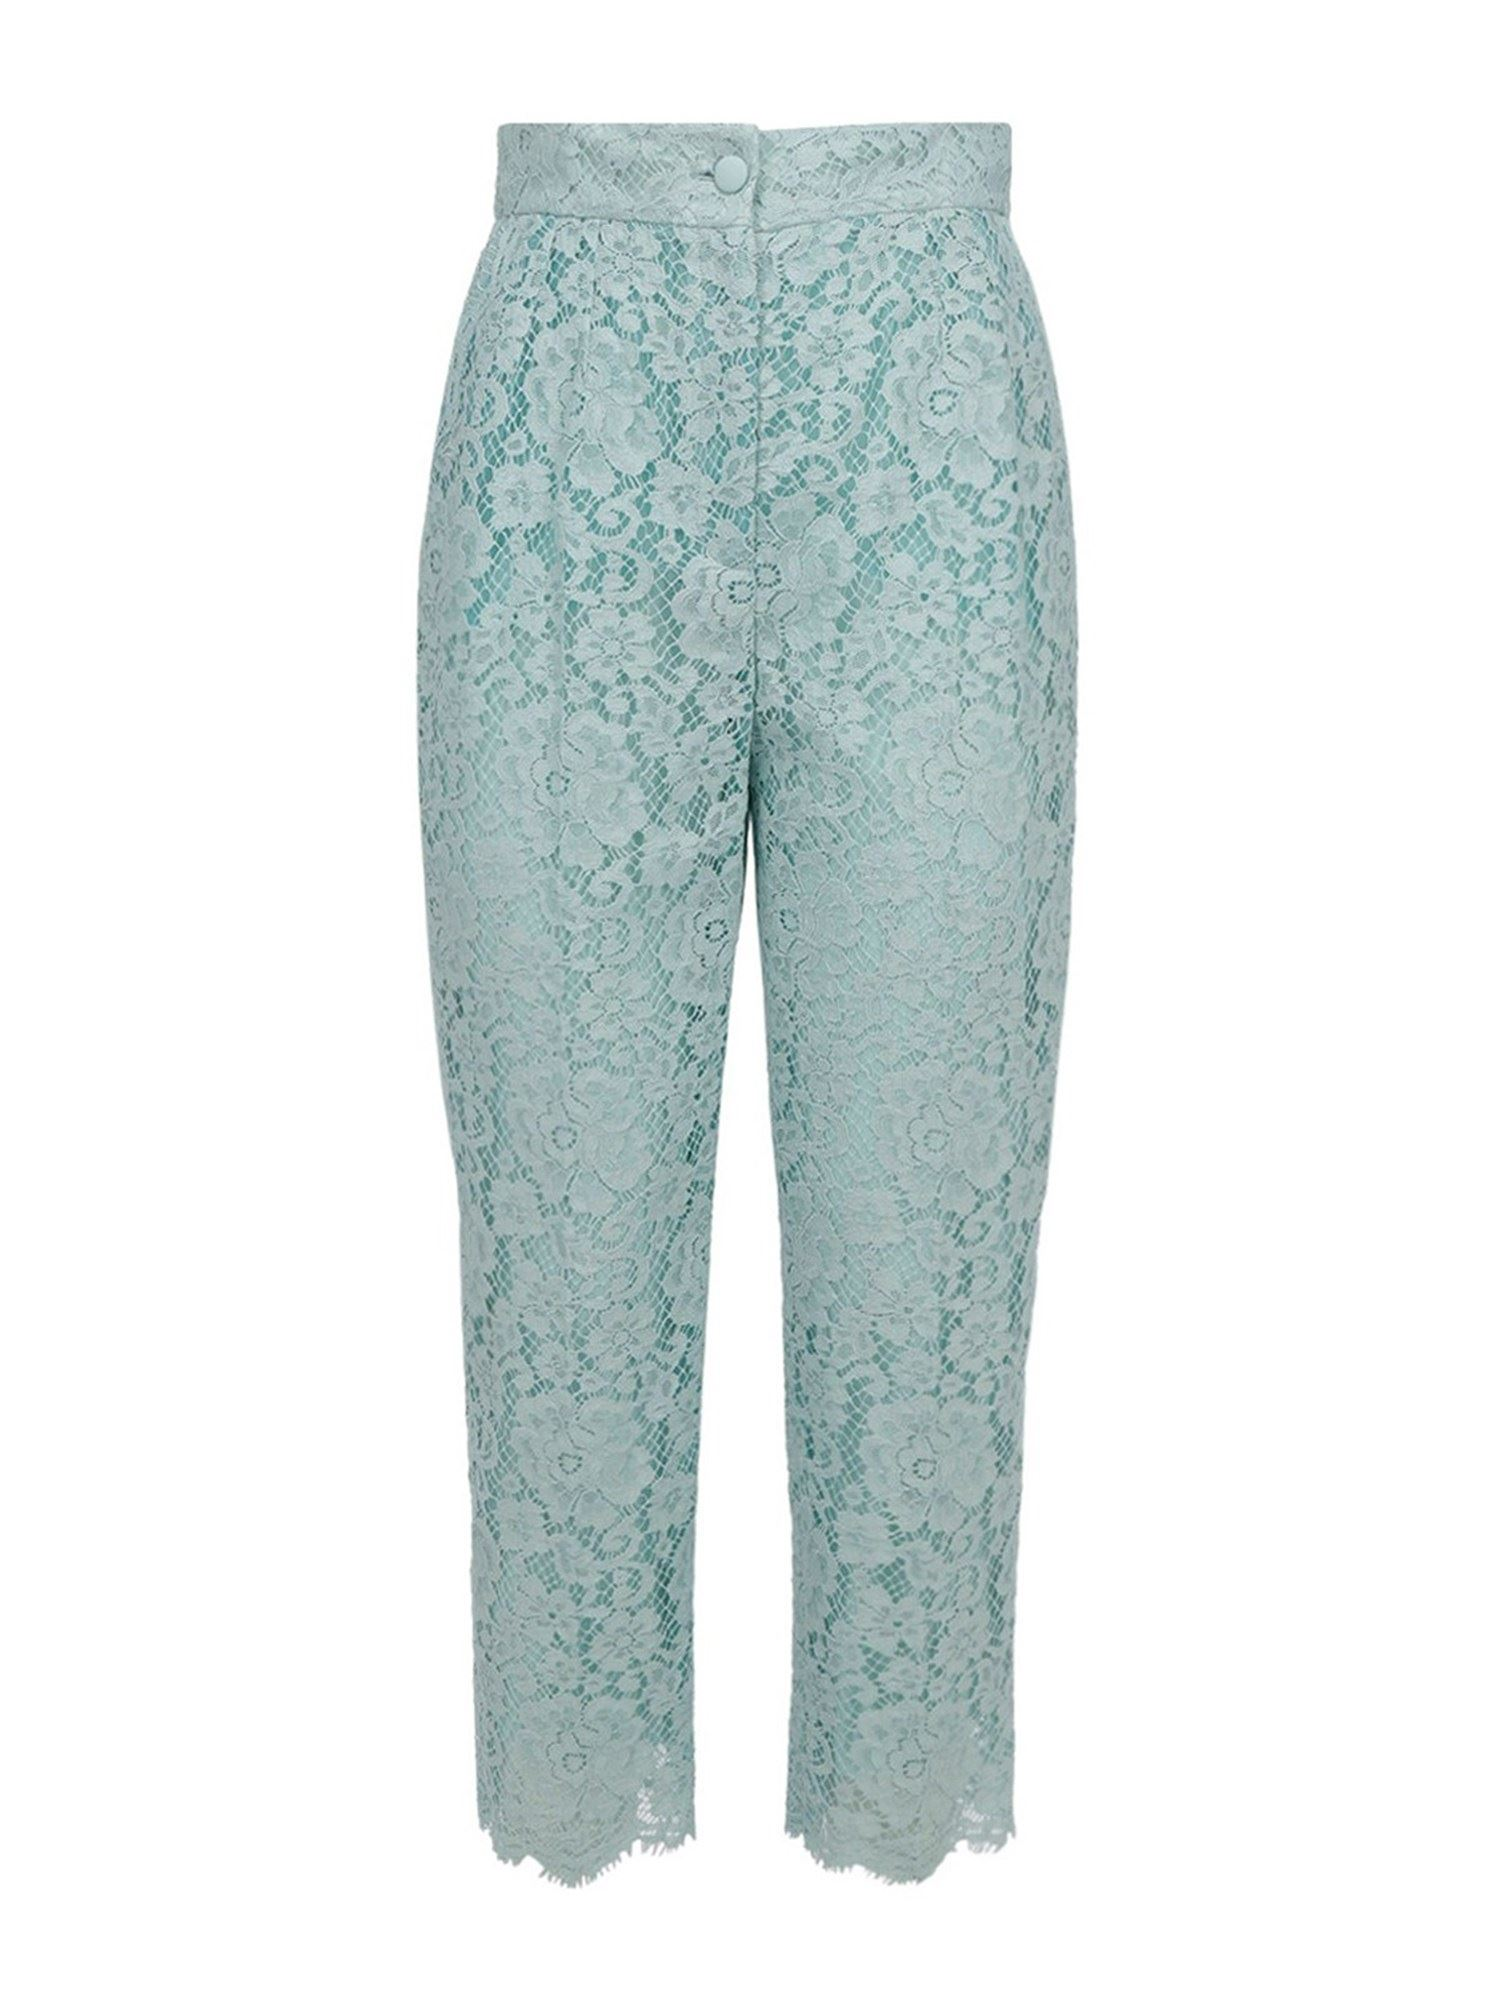 Dolce & Gabbana LACE PANTS IN LIGHT BLUE